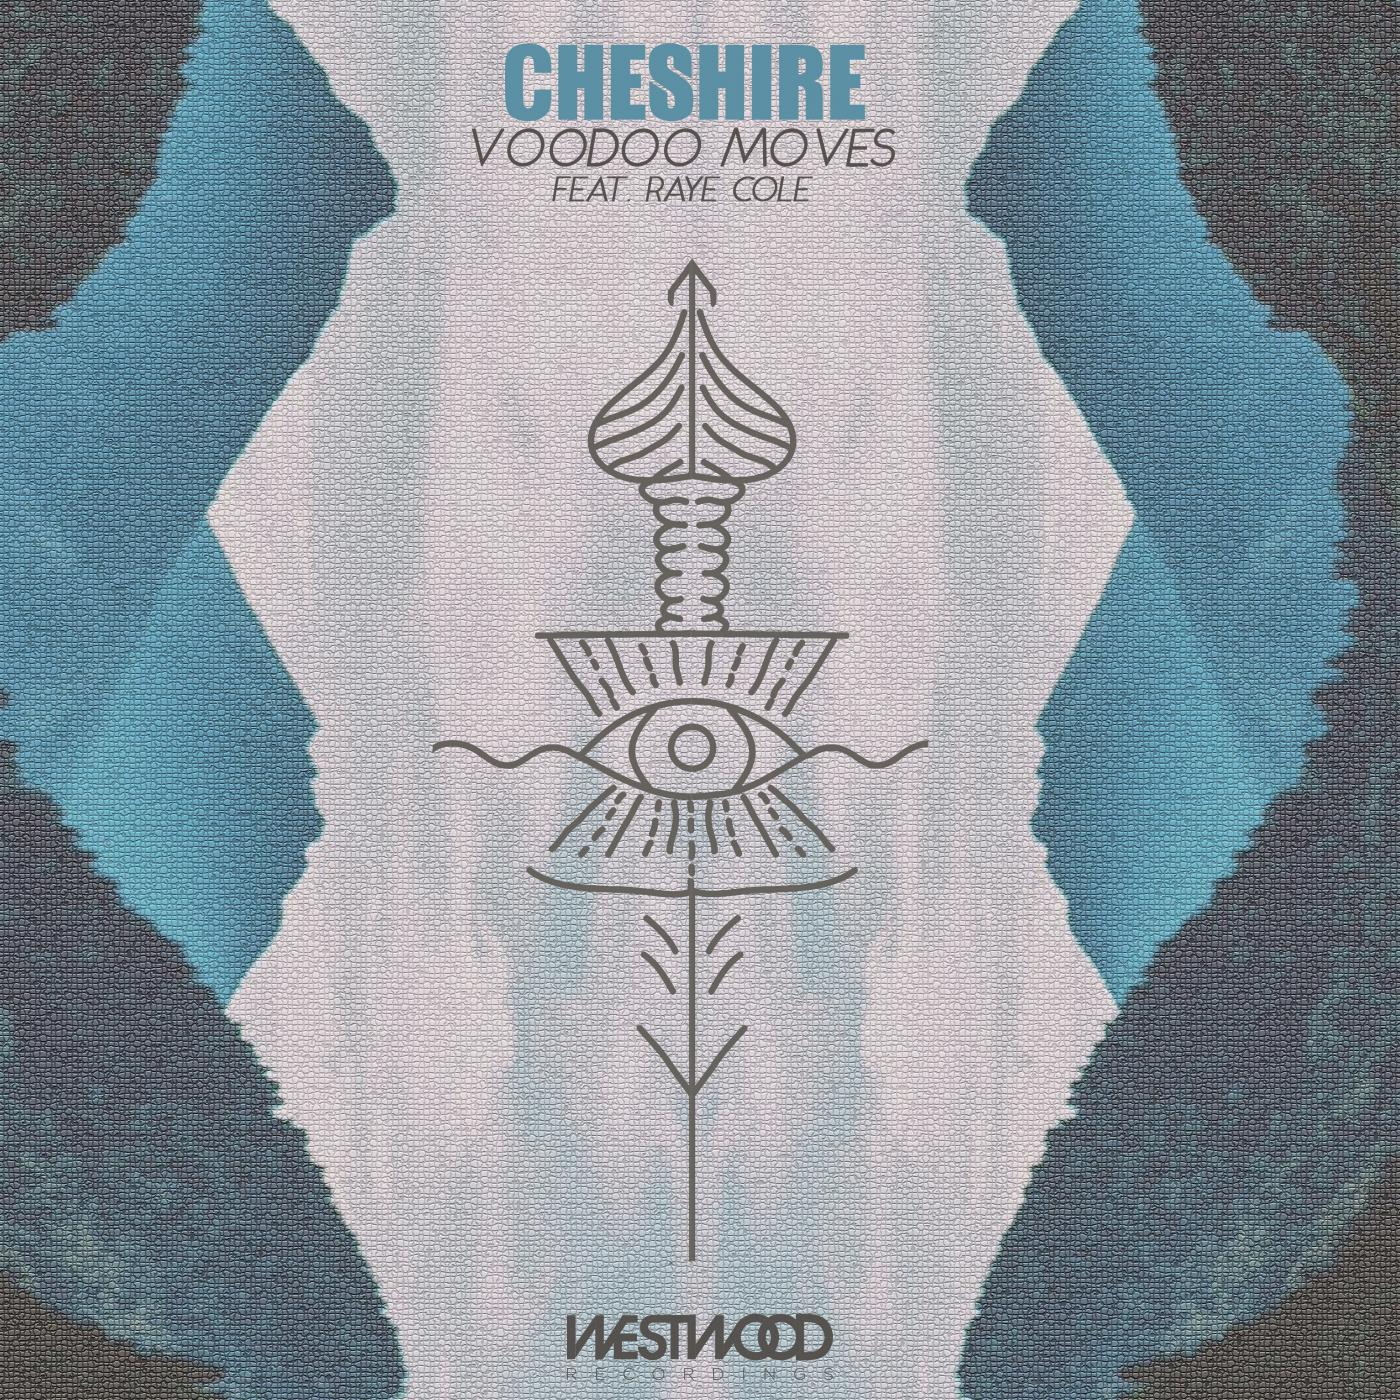 Cheshire - Voodoo Moves feat. Raye Cole